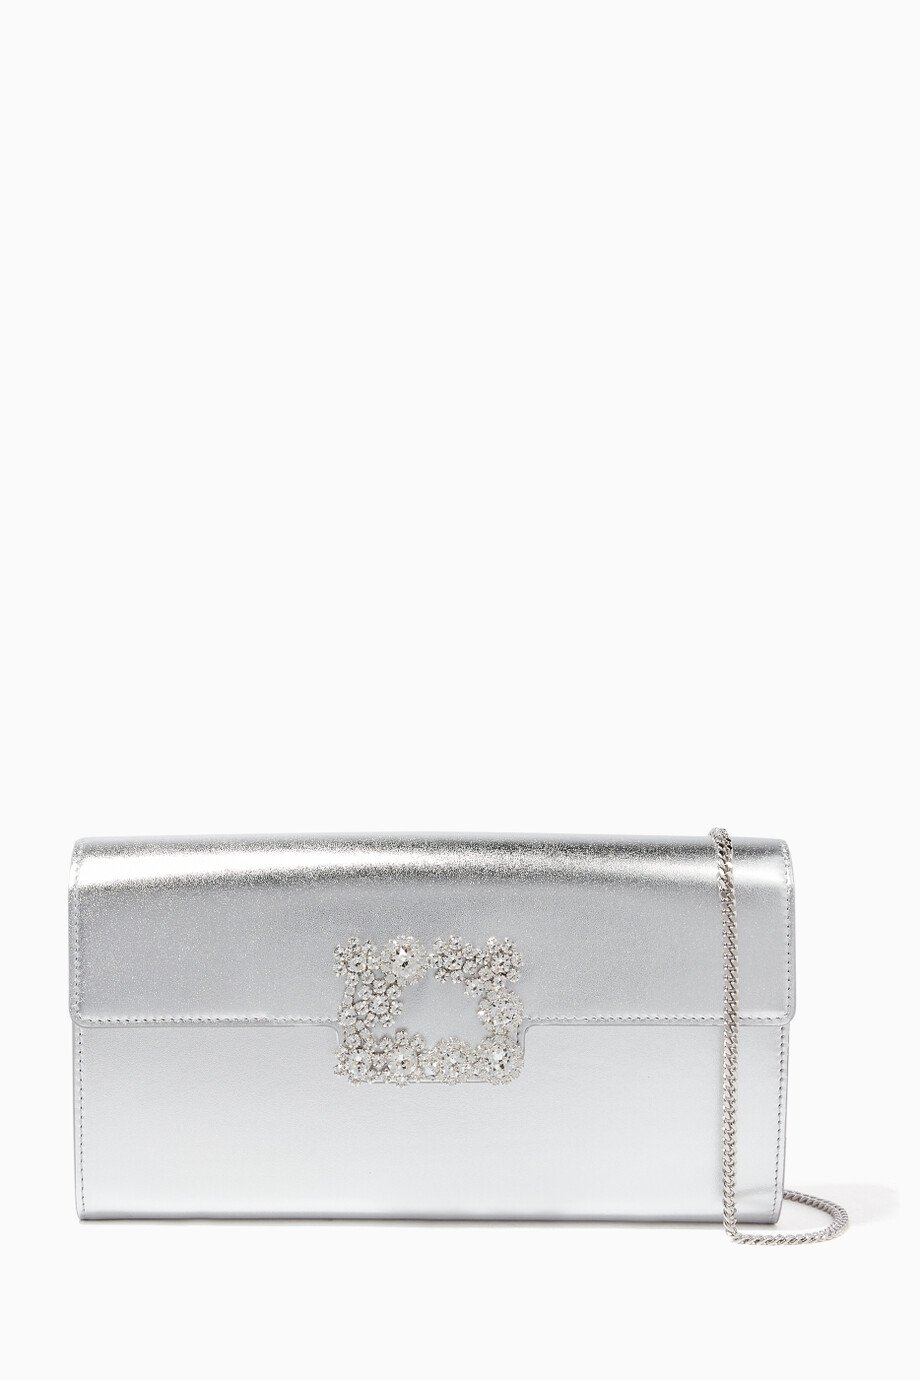 Shop Roger Vivier Silver Silver Flower Buckle Leather Clutch Bag for ... ae00242c31587